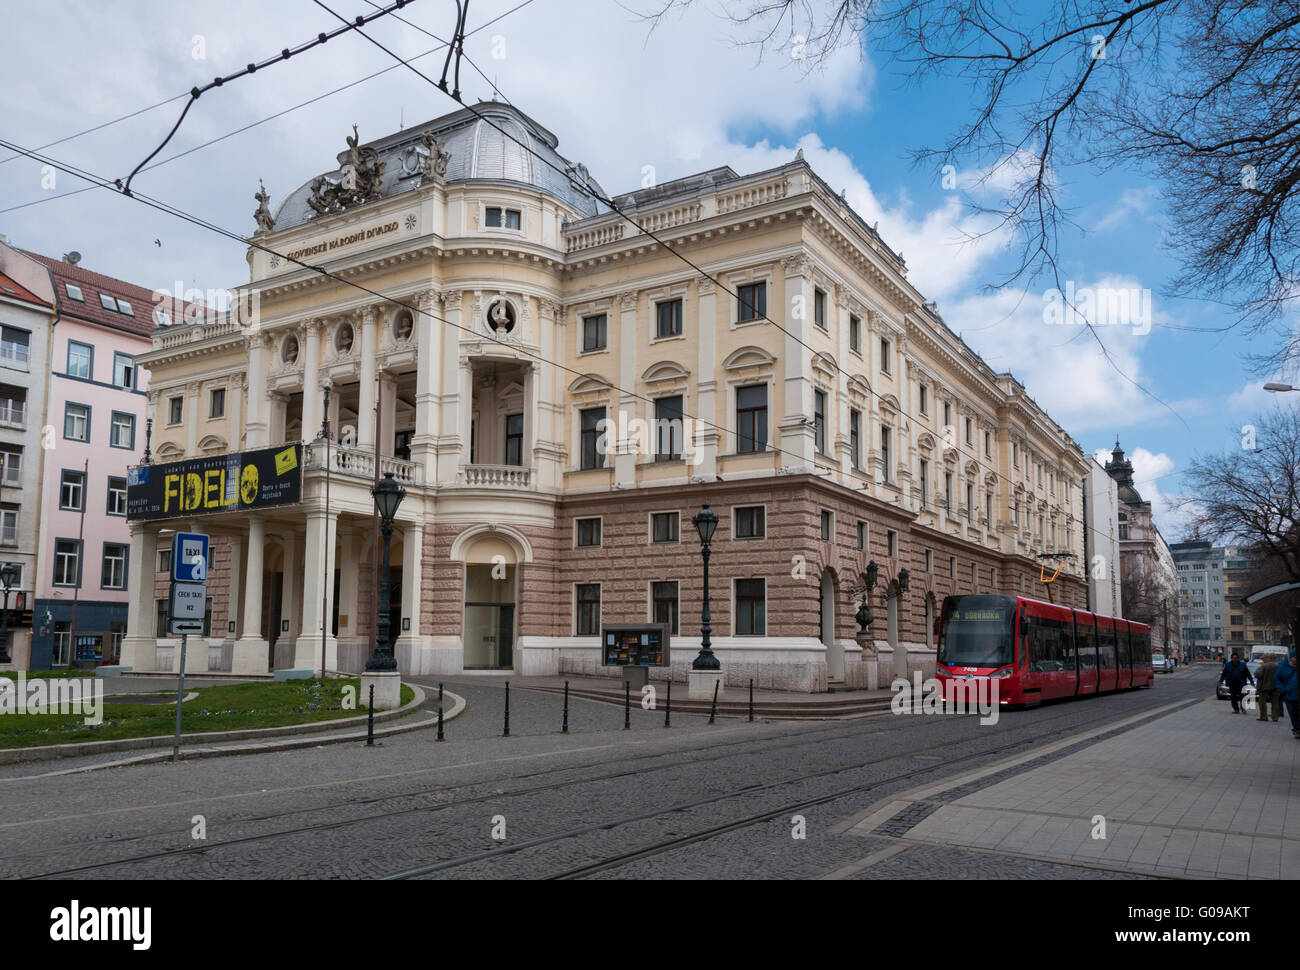 The National Theatre with modern tram in foreground, Bratislava, Slovakia - Stock Image